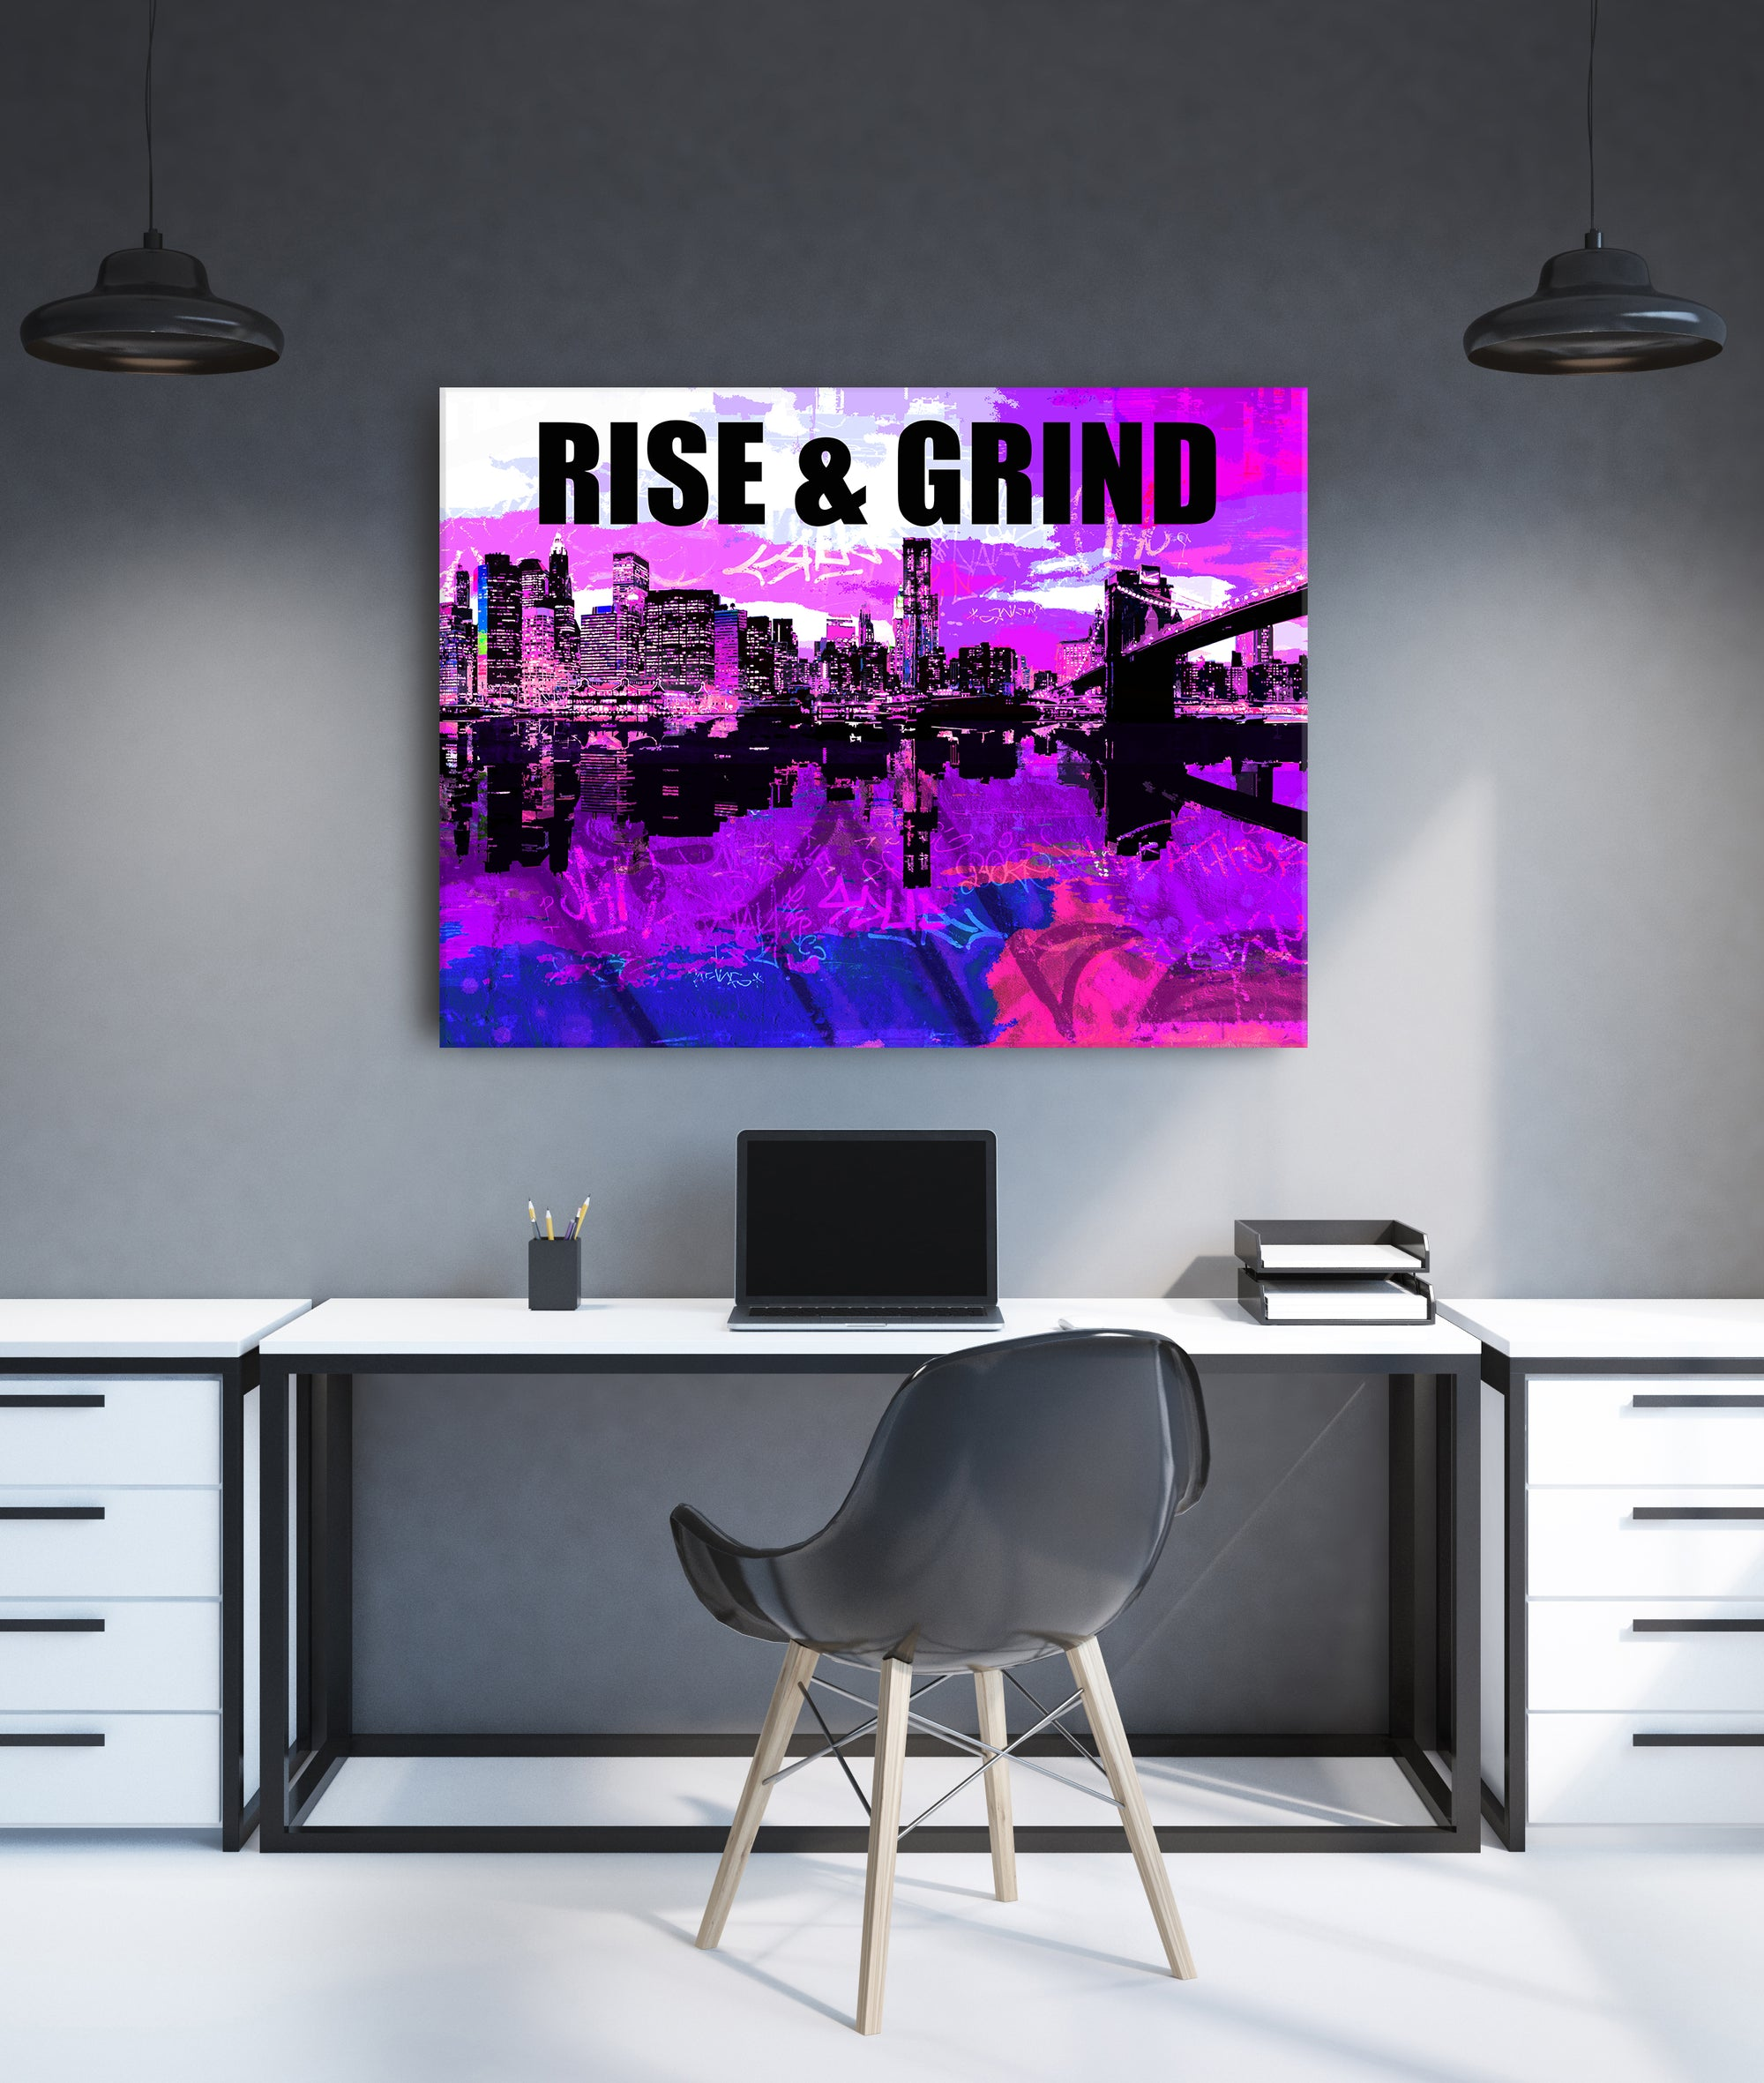 Powerful Women Wall Art: Rise And Grind (Wood Frame Ready To Hang)